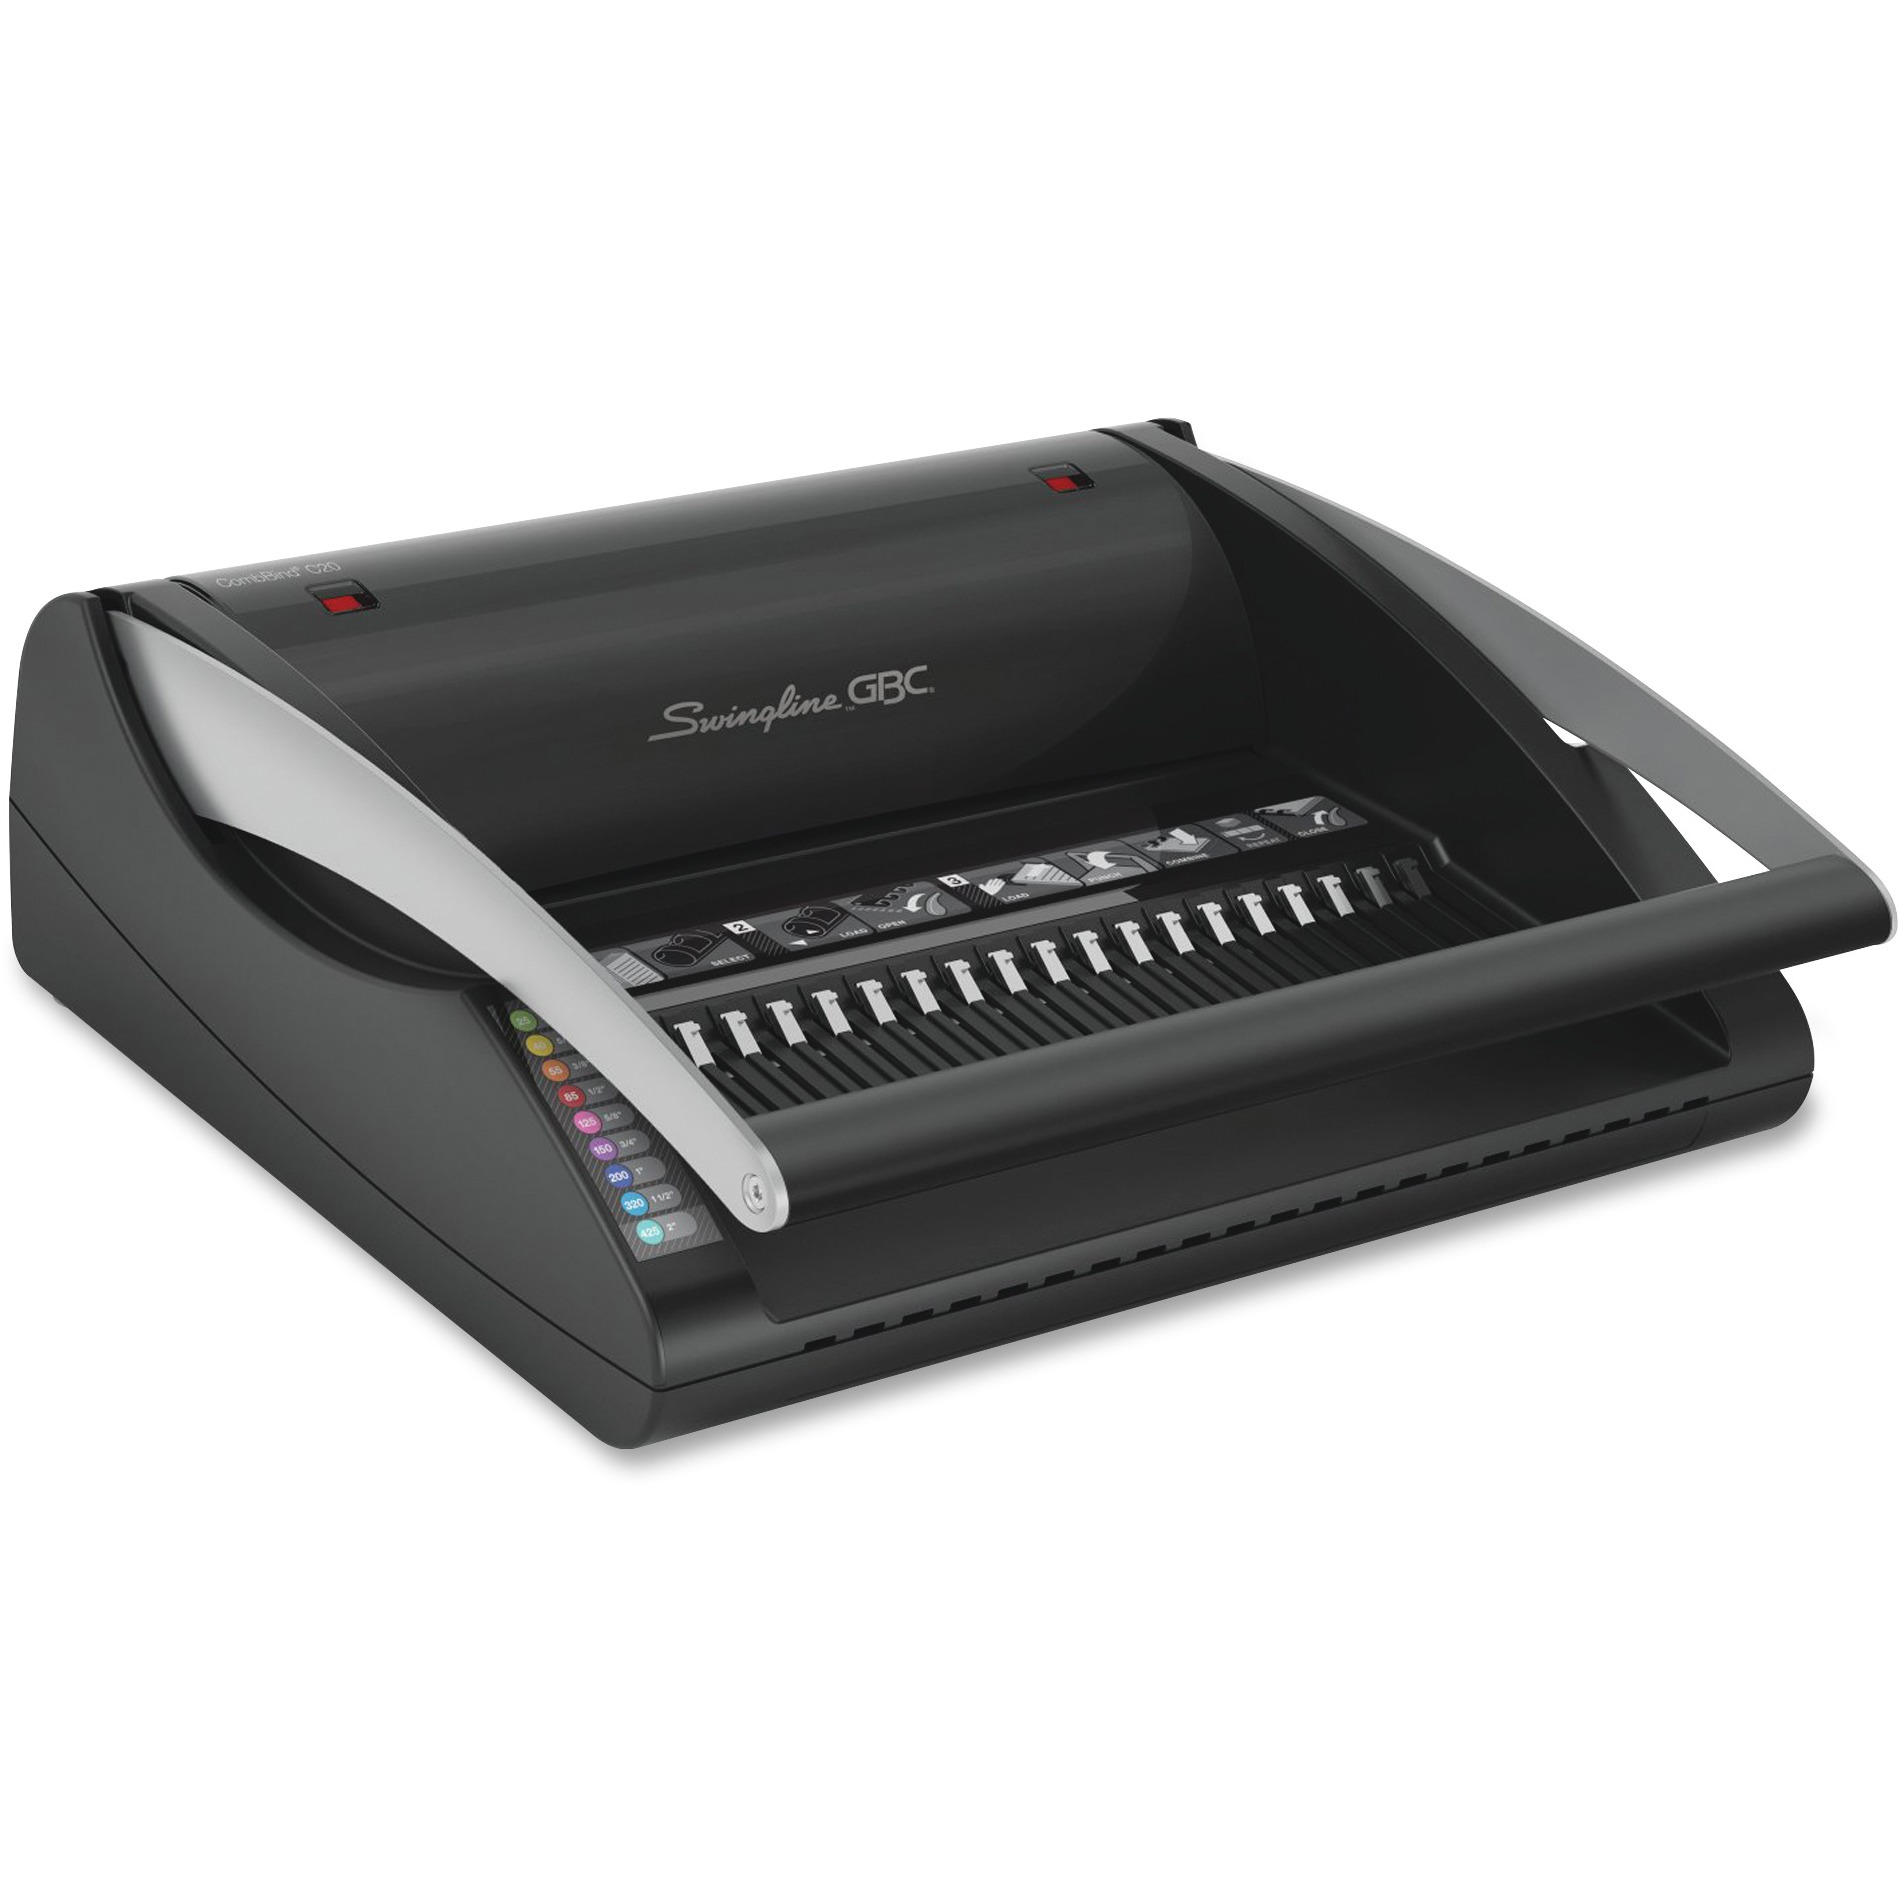 Swingline GBC CombBind C20 Manual Binding Machine, Binds 330 SHeets, Punches 20 SHeets, Black by ACCO Brands Corporation